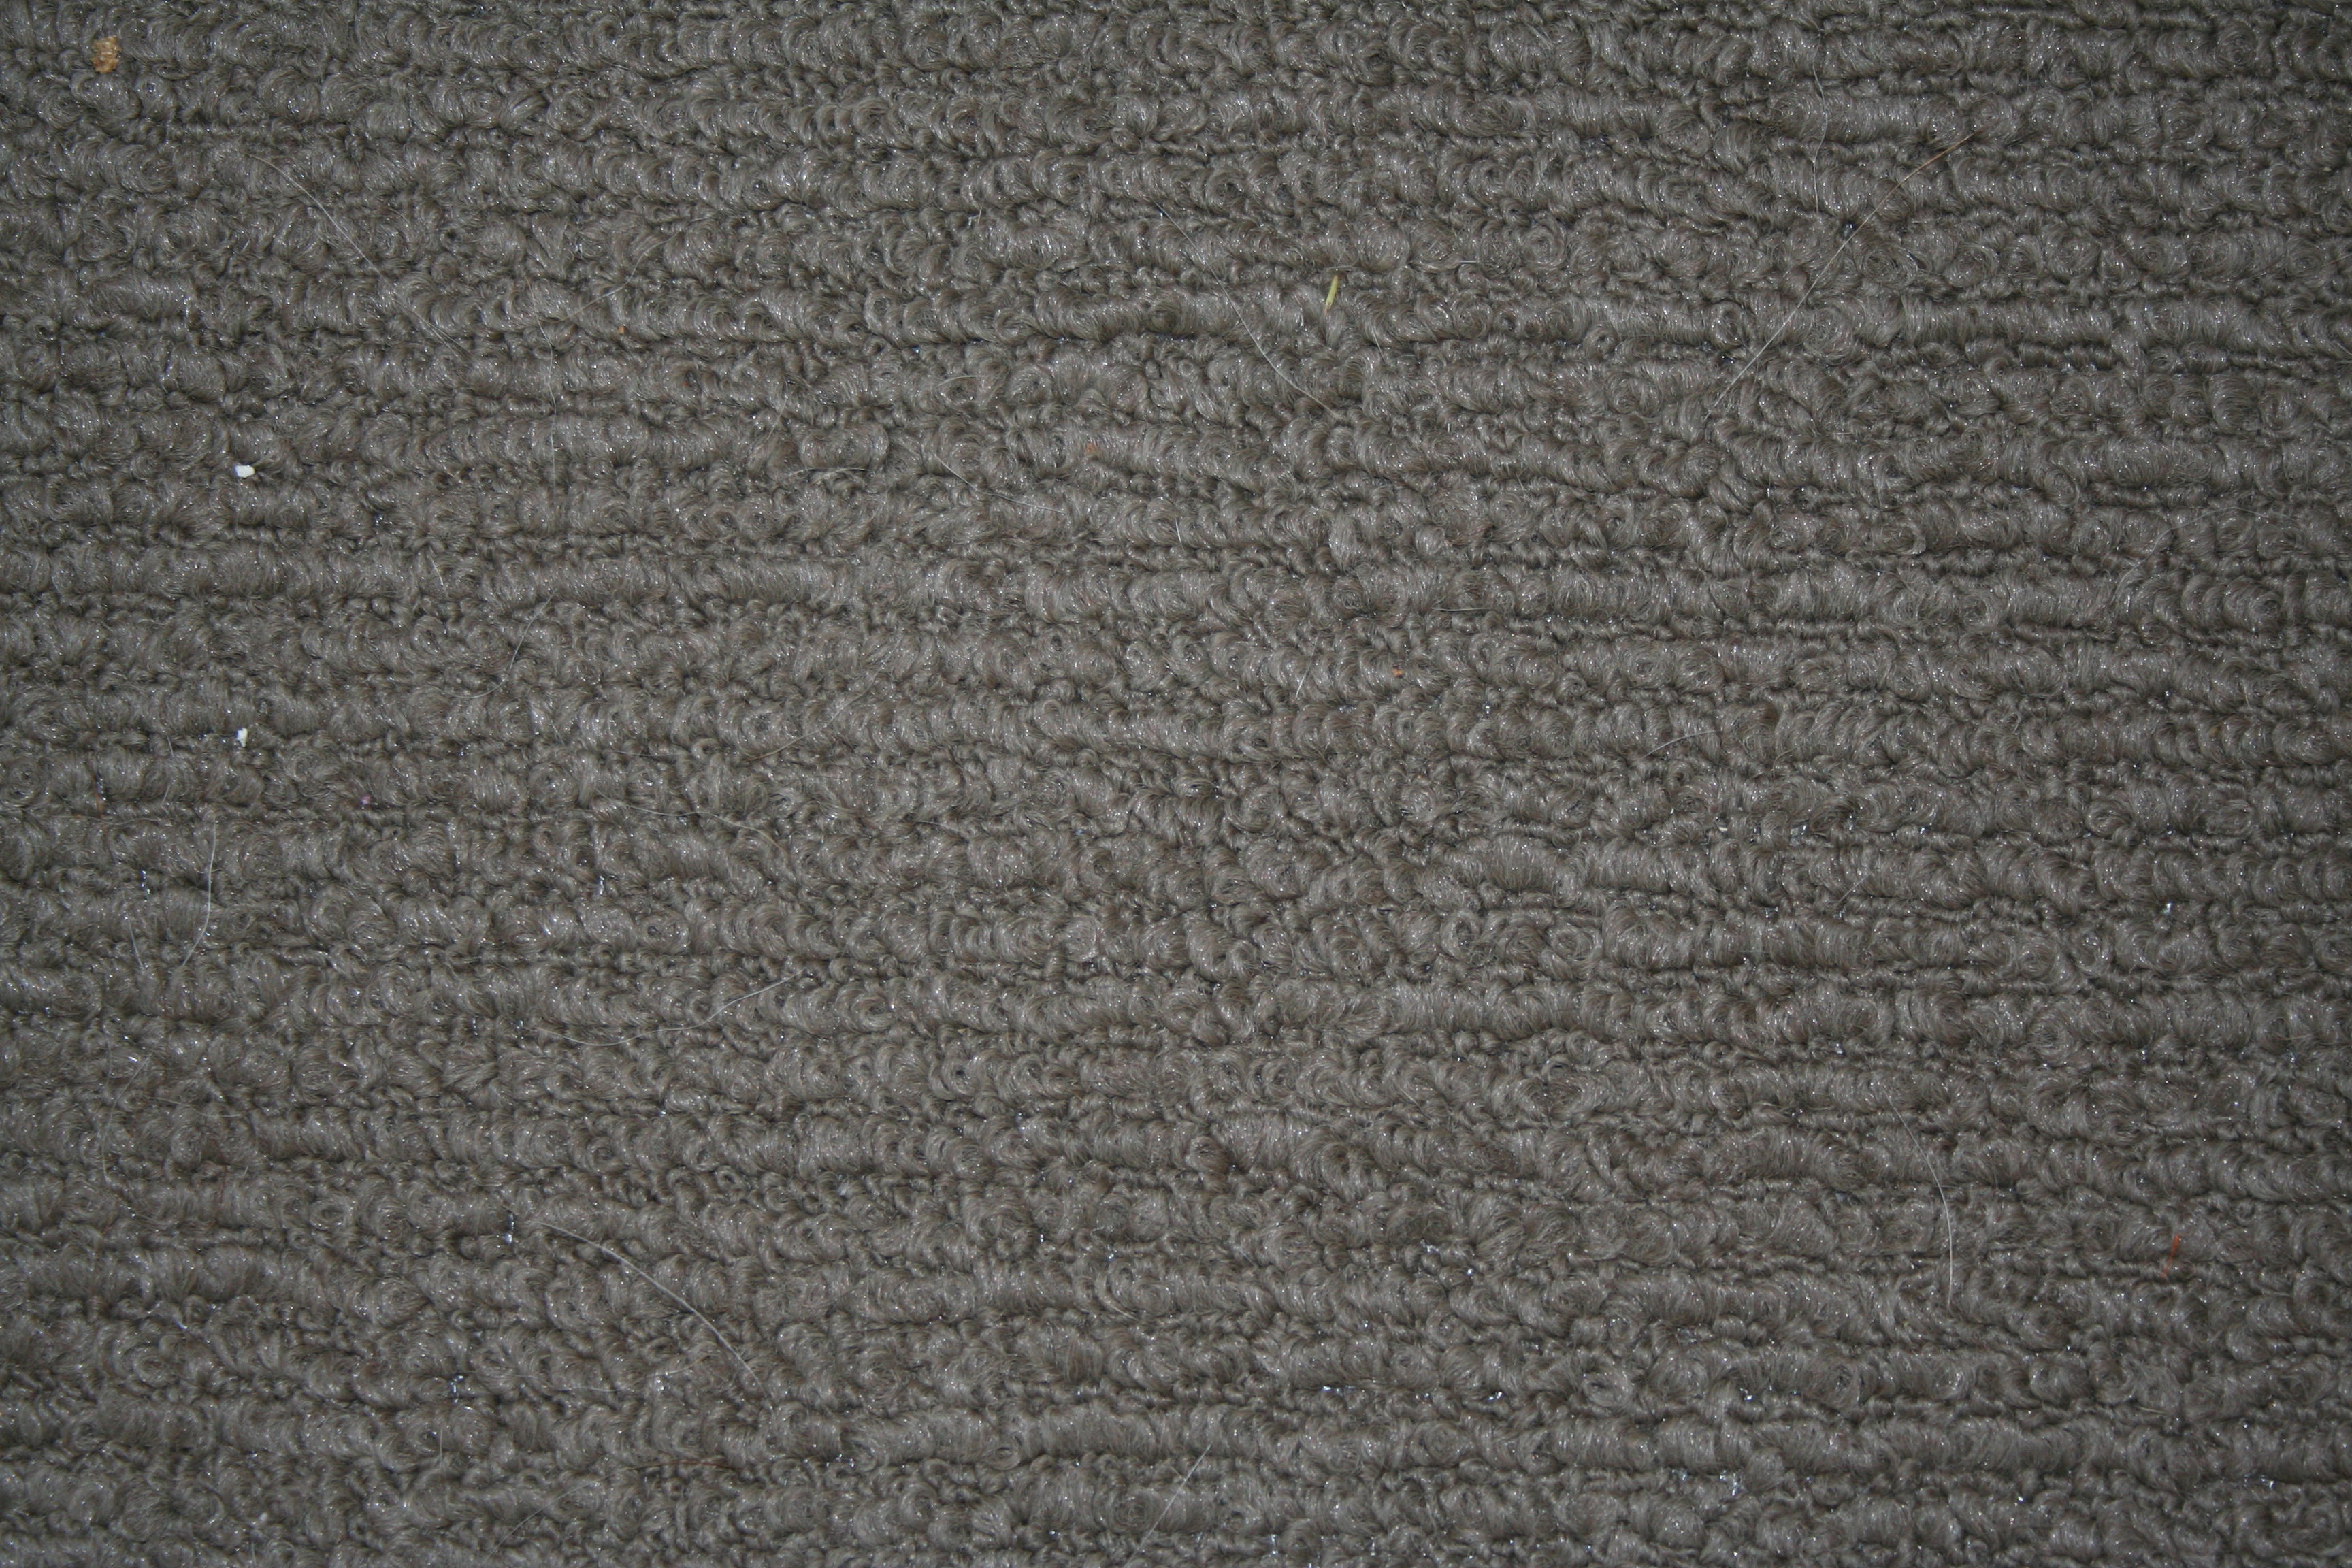 Carpet 1 by Lill-stock